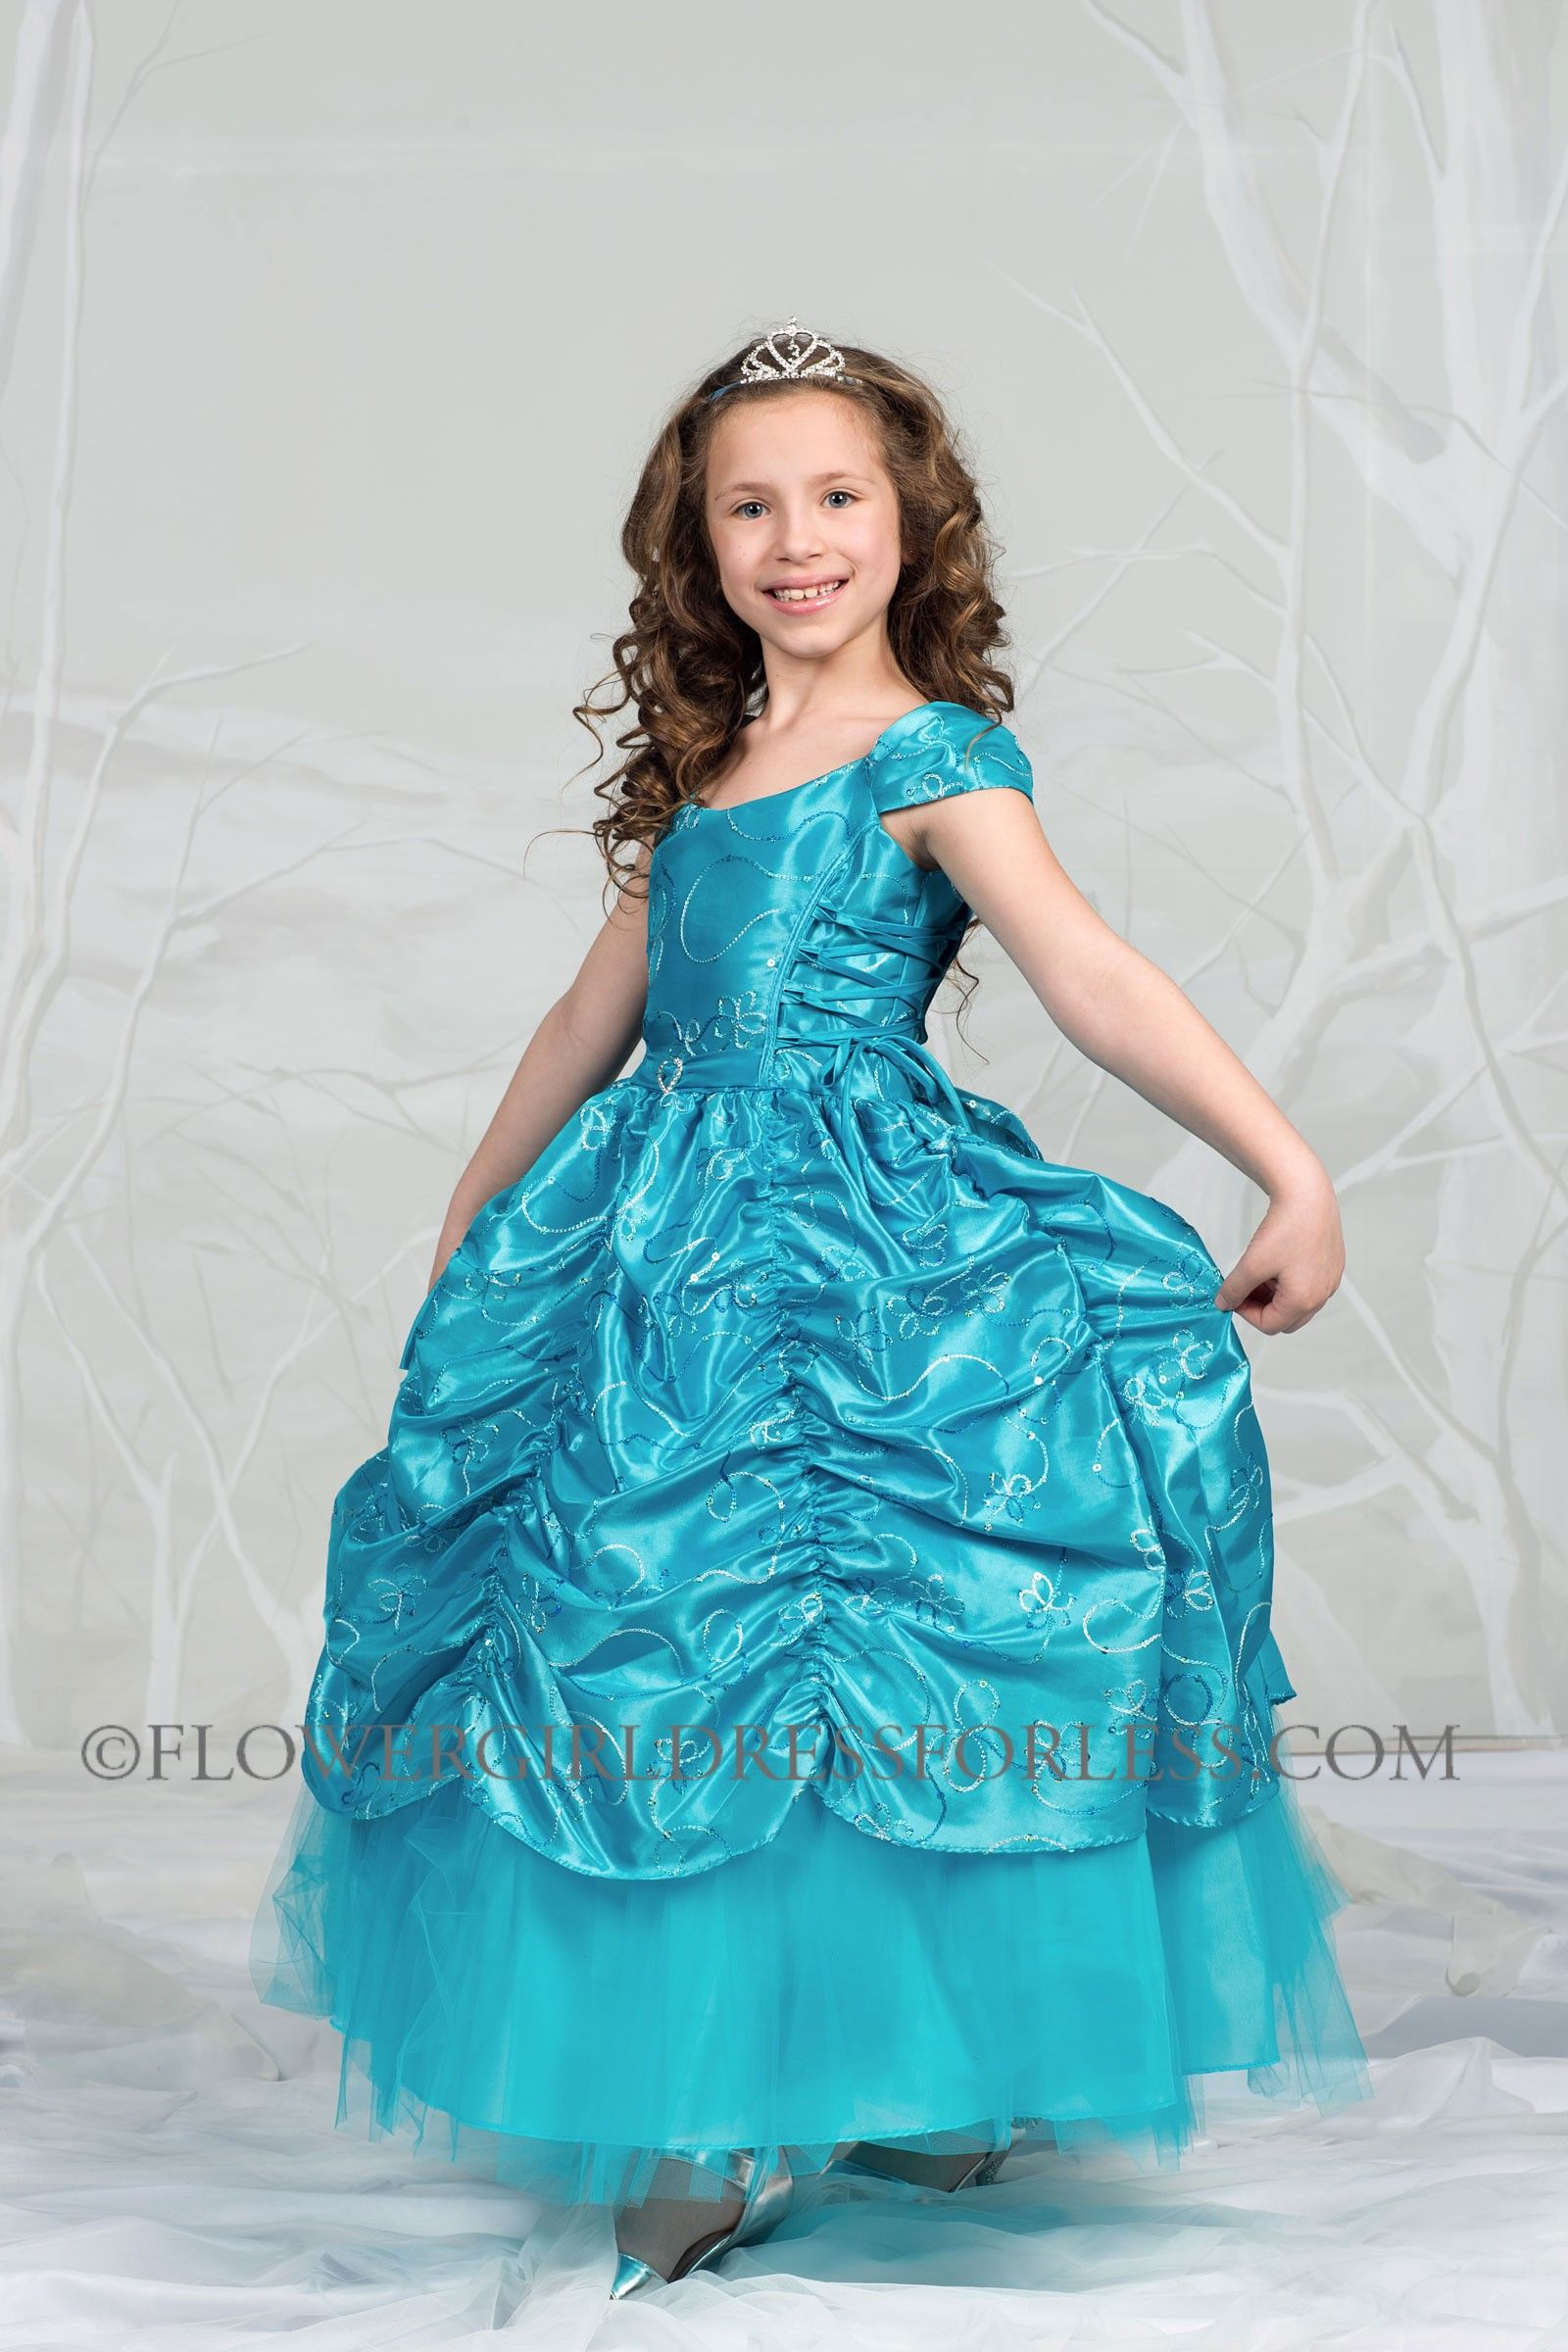 Girls Dress Style 596 - TURQUOISE Short Sleeve Satin Dress with ...